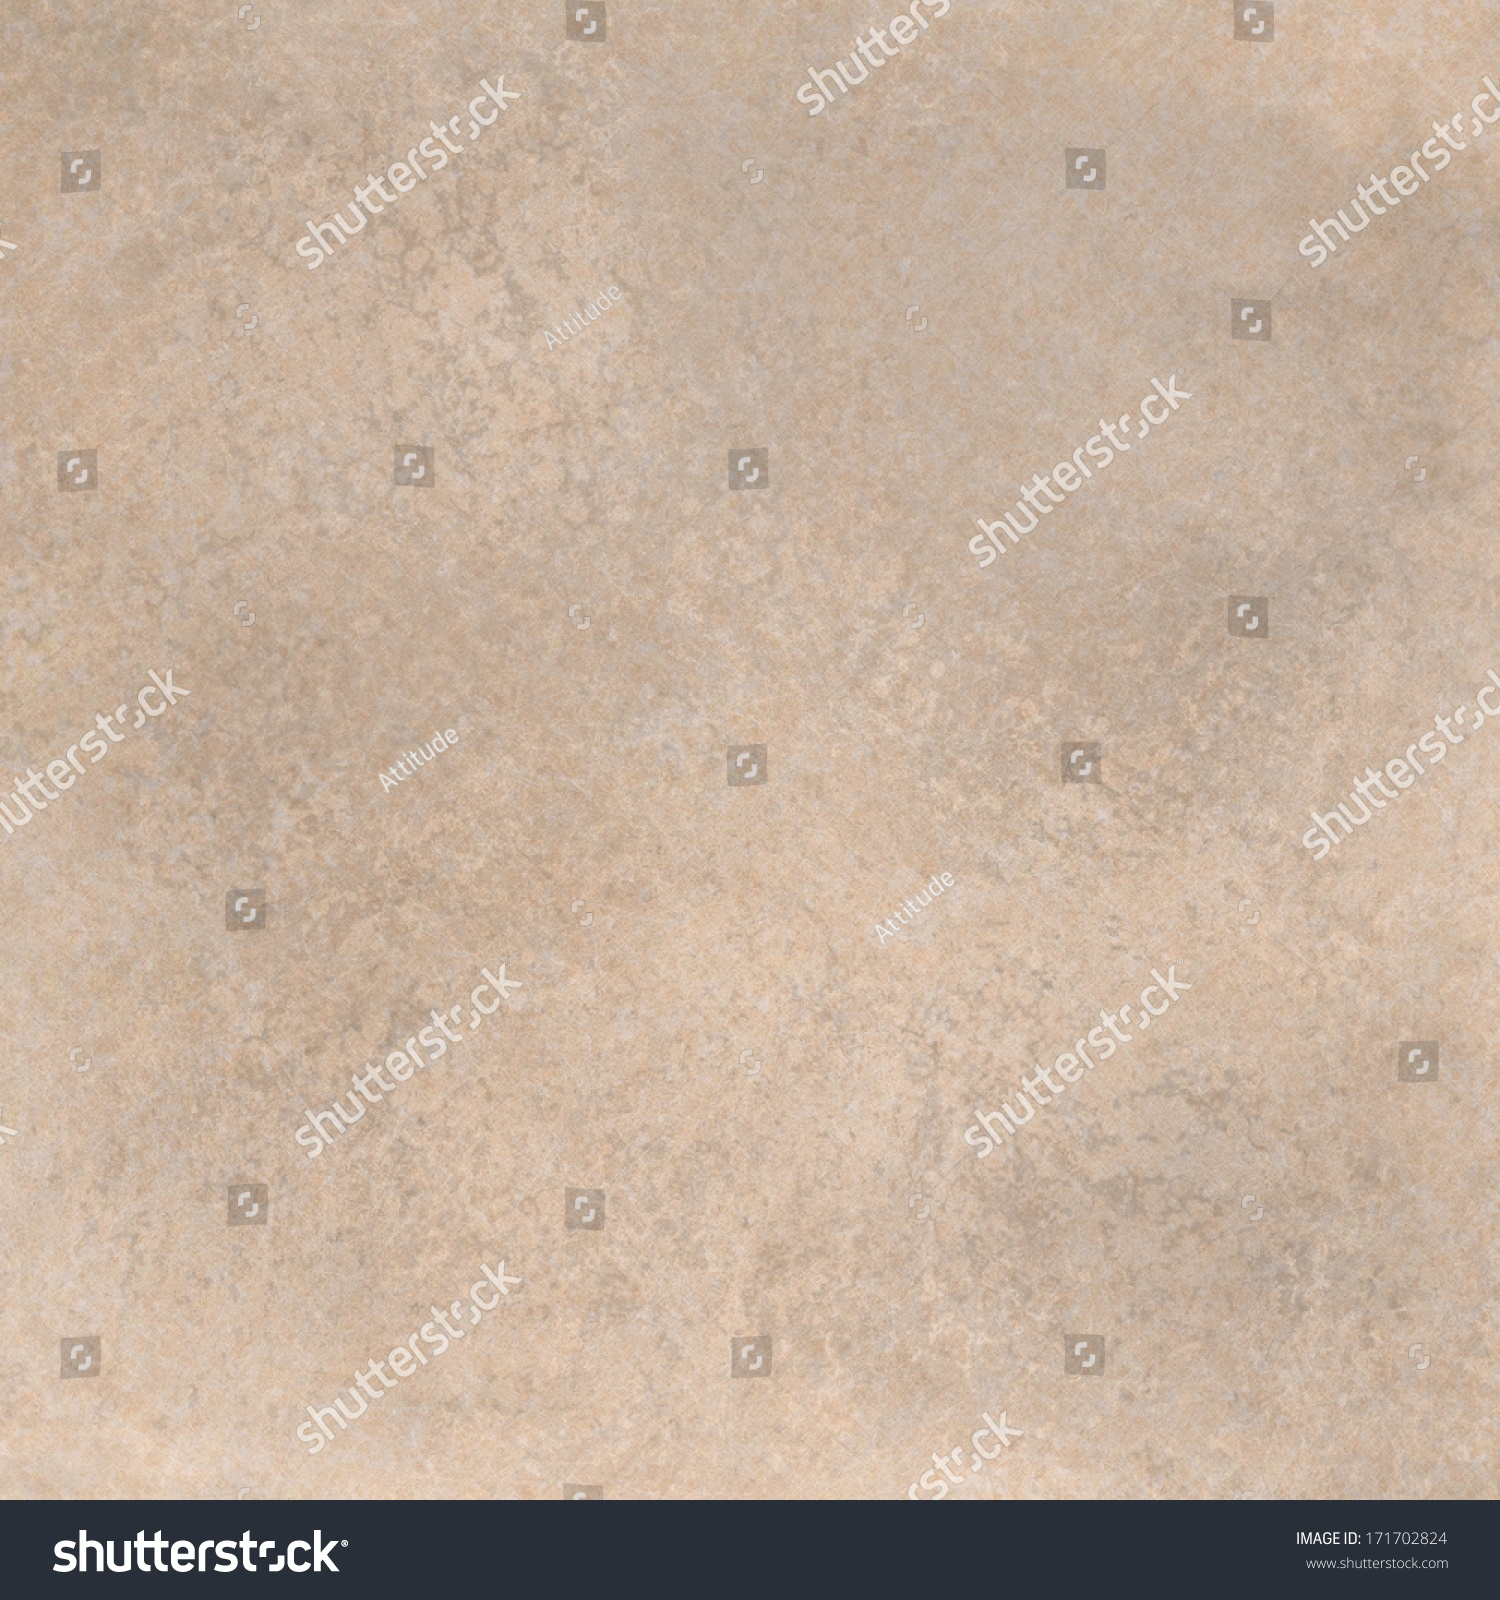 Abstract Vintage Brown Background Illustration Rustic Stock